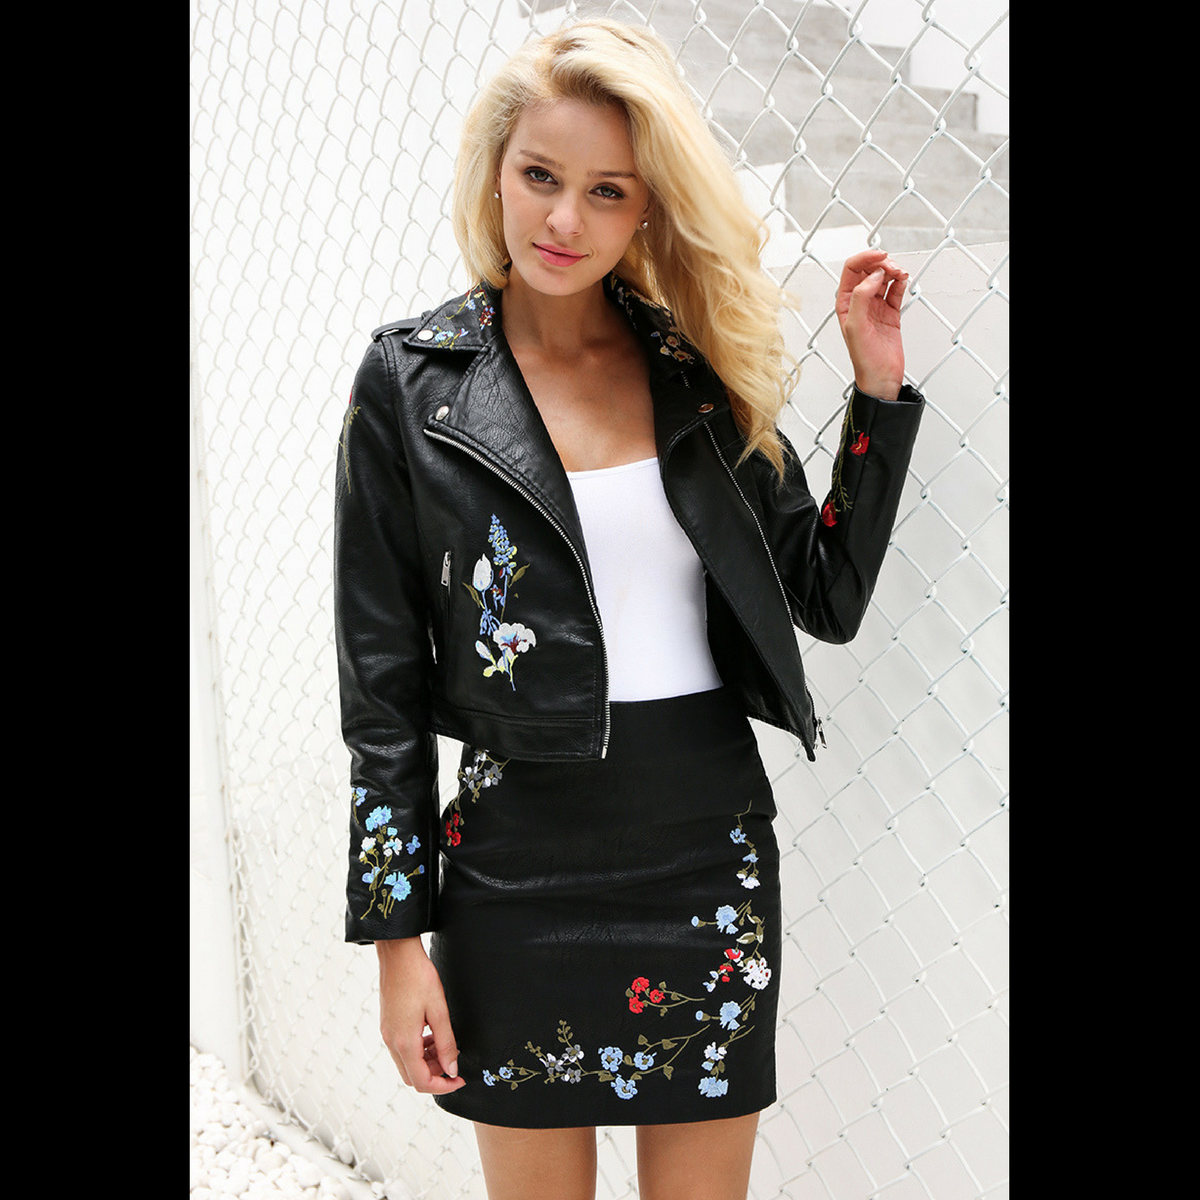 Floral Embroidered Leather Jacket